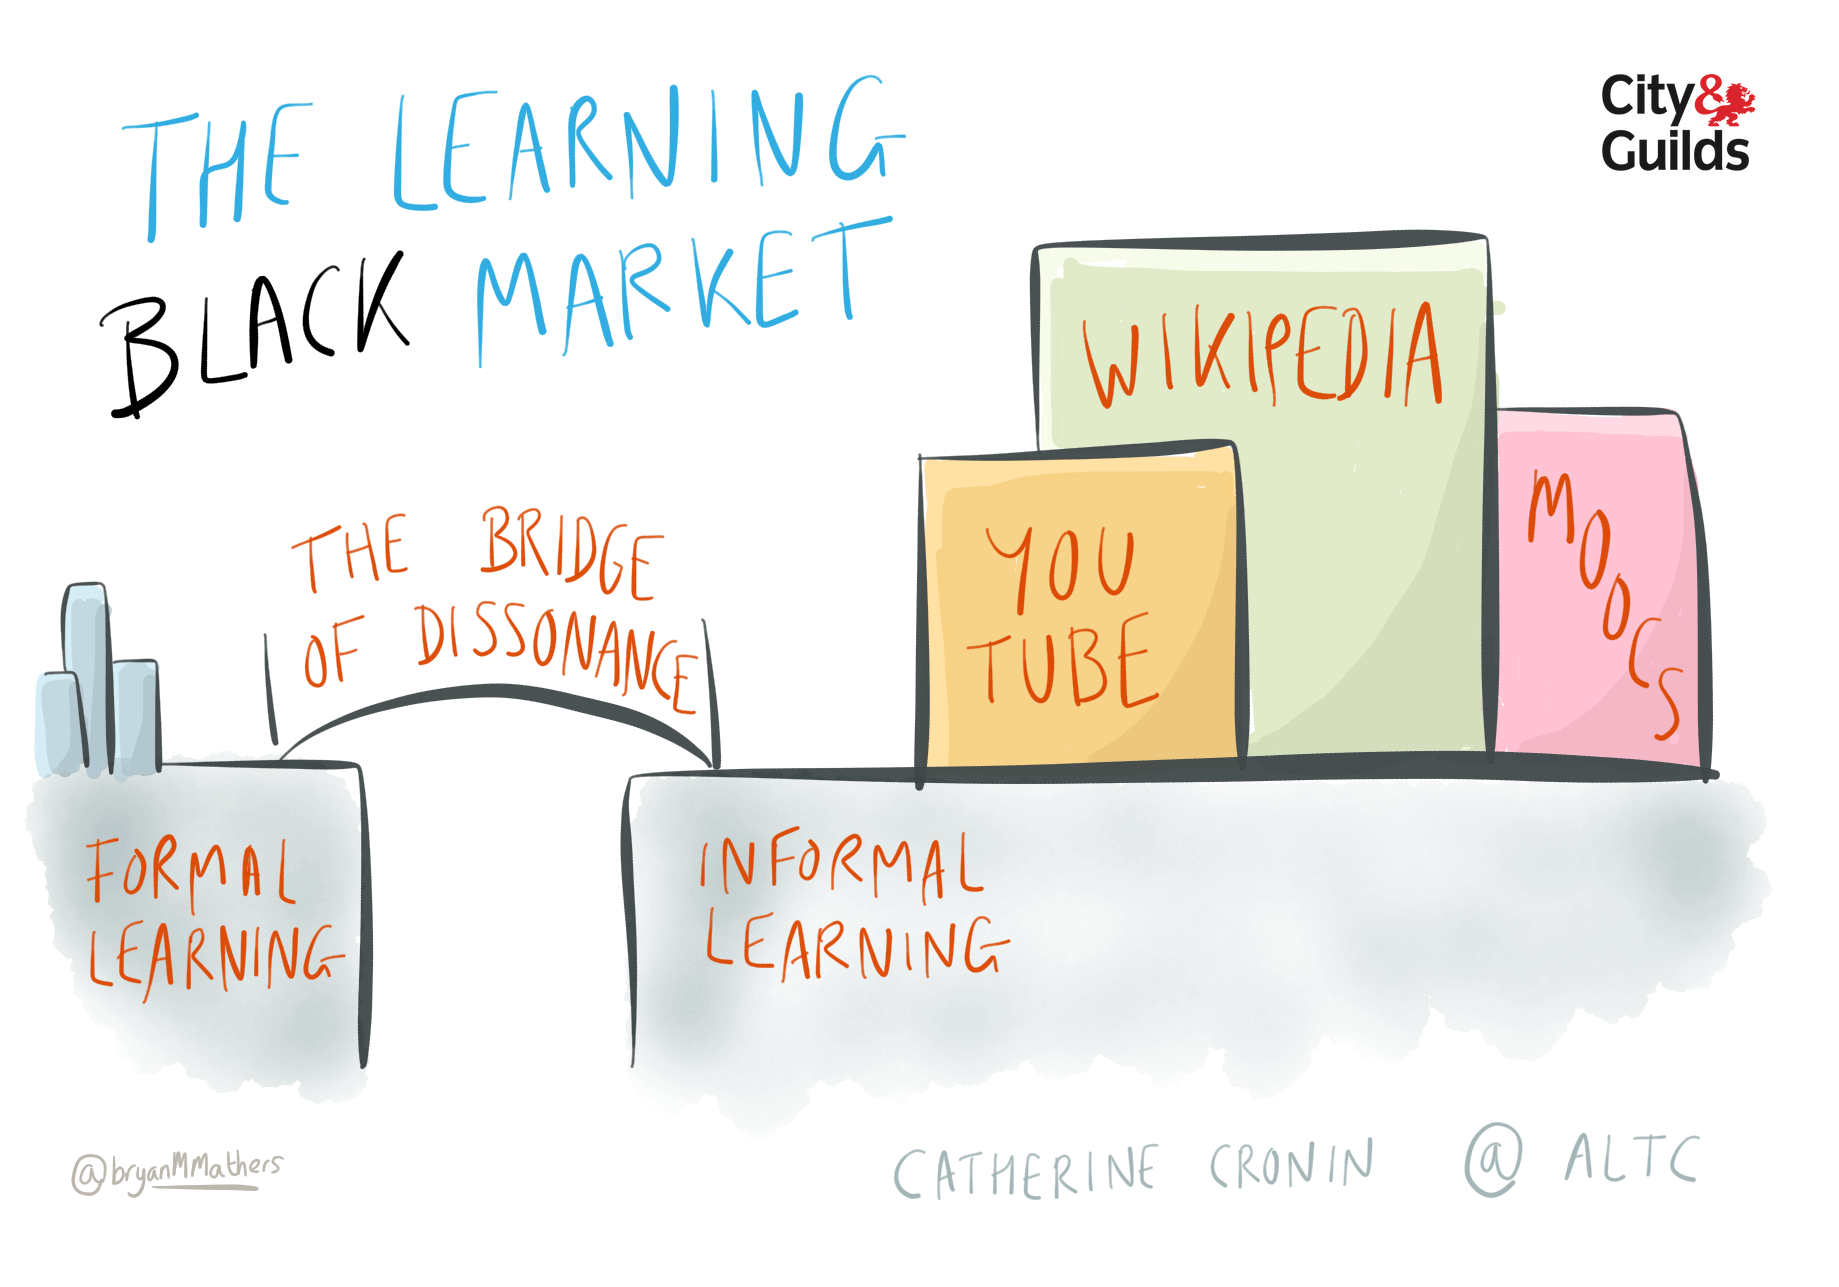 The Learning Black Market